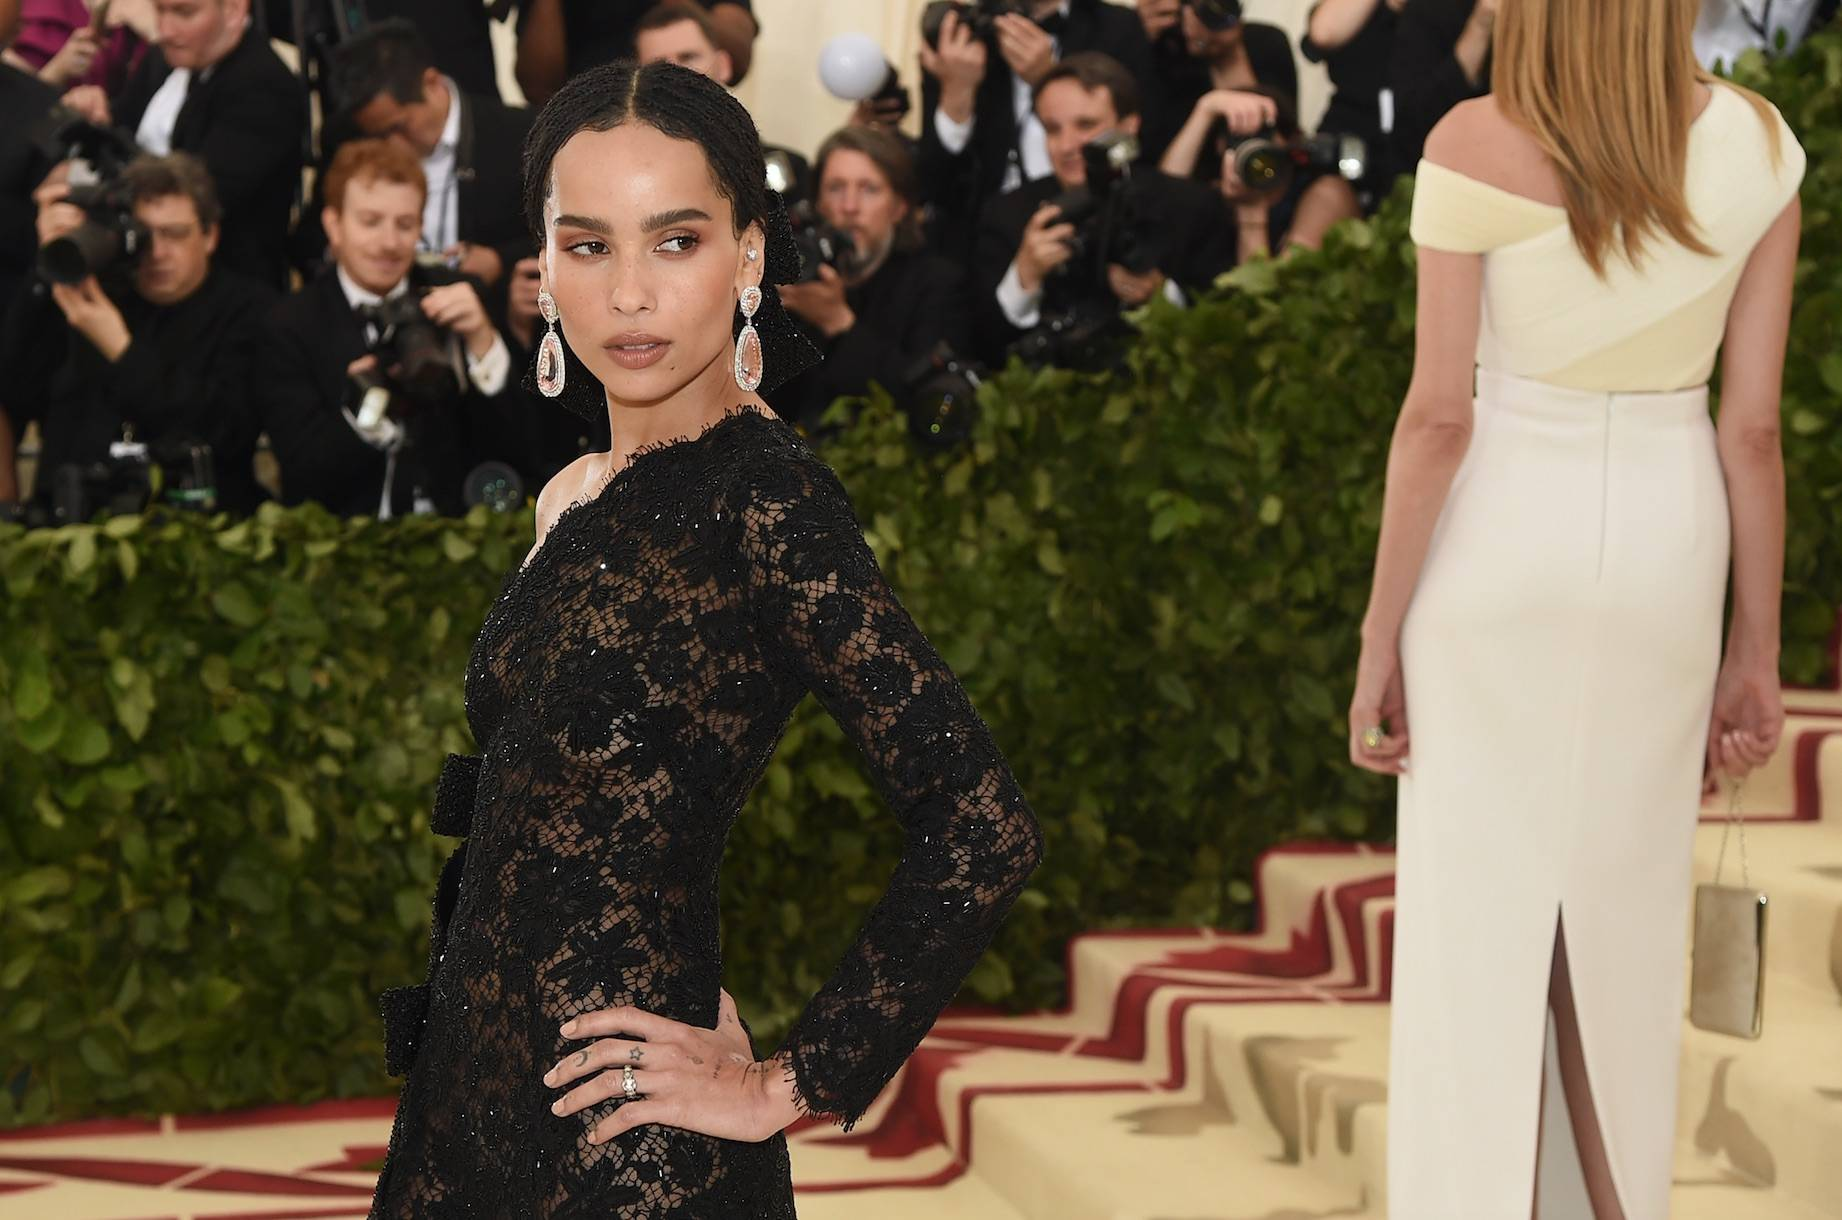 """Zoe Kravitz - Sis was engaged this whole time without anyone even saying anything about that big rock on her finger! In her recent interview with Rolling Stone, Zoe Kravitz reveals she's been engaged to her boo, Karl Glusman, for eight months. She was even showing off her ring at this years Met Gala. She told Rolling Stone, """"Oh yeah,I'm engaged... I haven't told anyone yet — I mean, I haven't told the world. I wanted to keep it private."""" Welp, you succedded because we had no idea! (Photo: Jamie McCarthy/Getty Images)"""